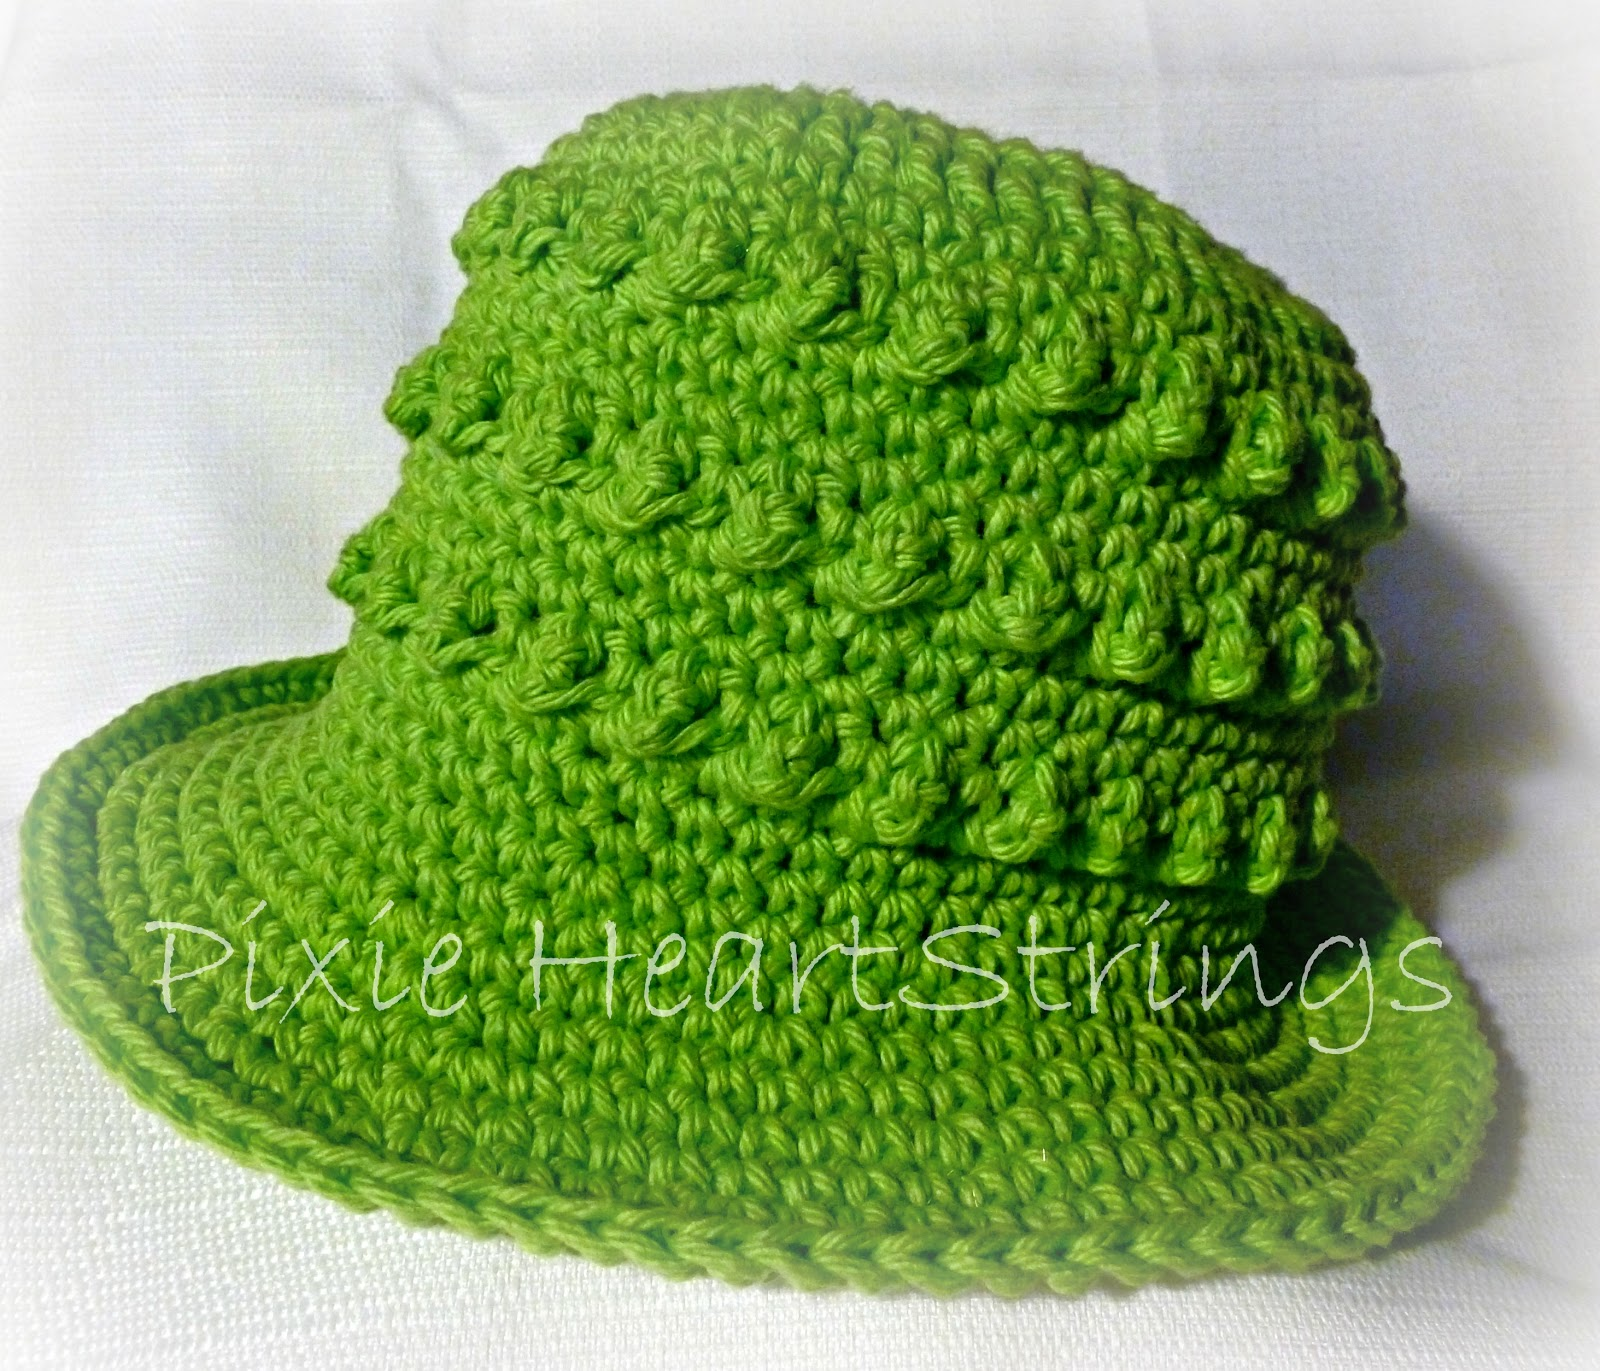 Pixie HeartStrings: Popcorn Sun Hat Pattern...